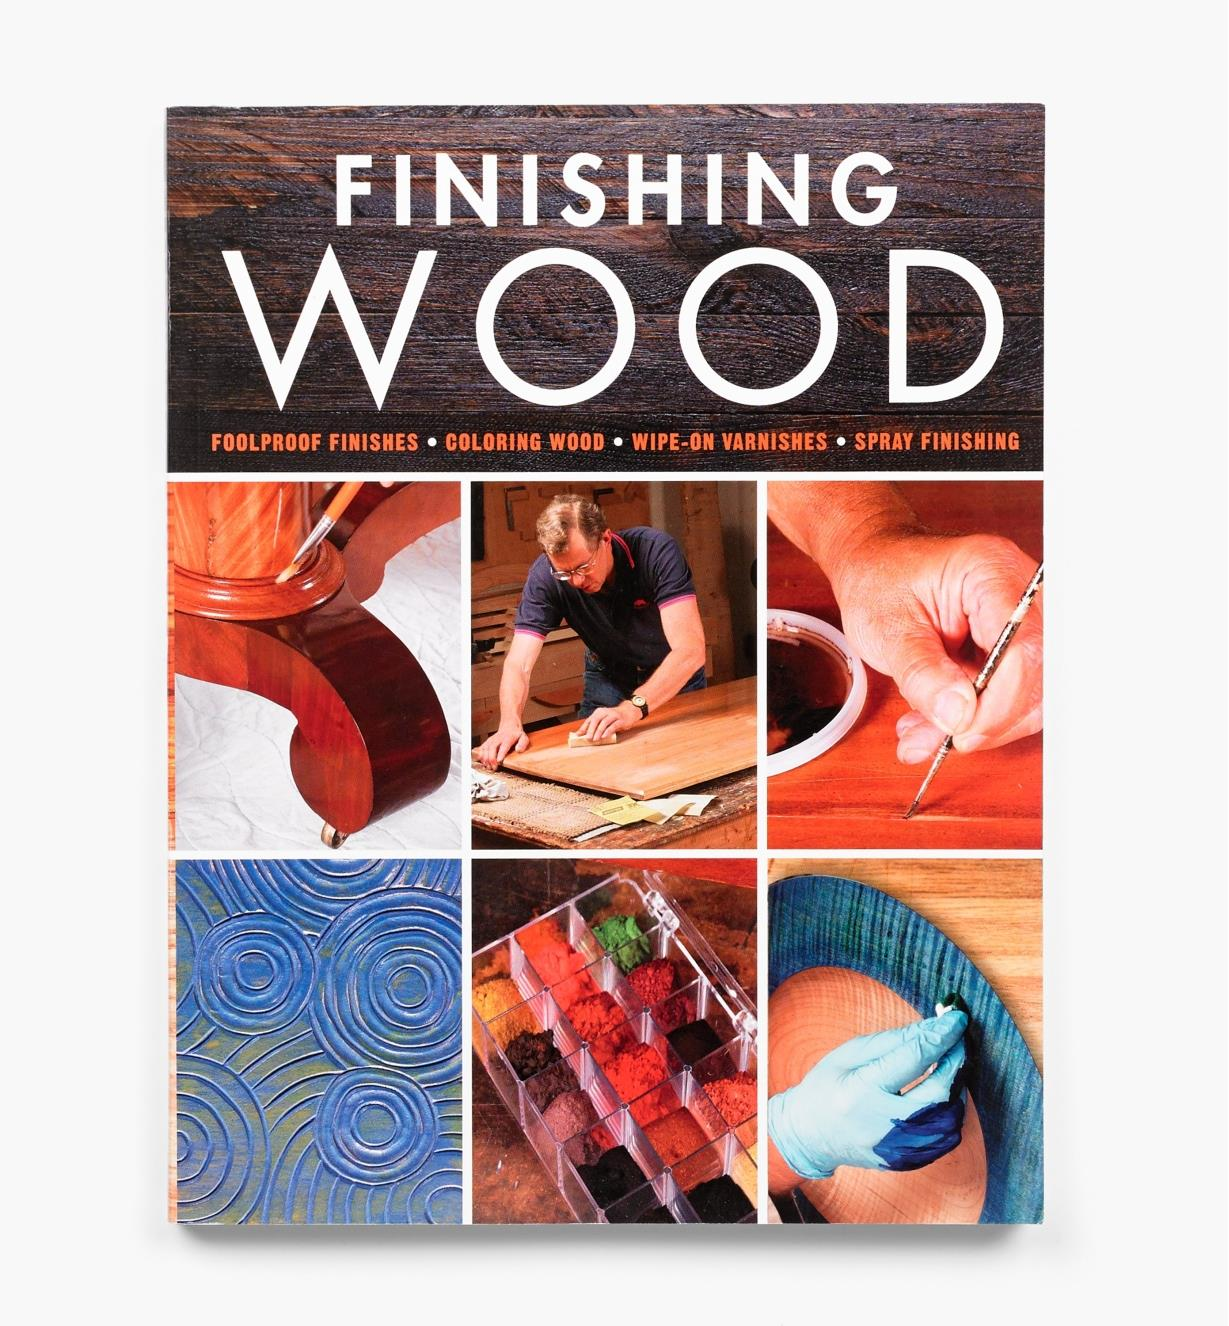 73L0300 - Finishing Wood